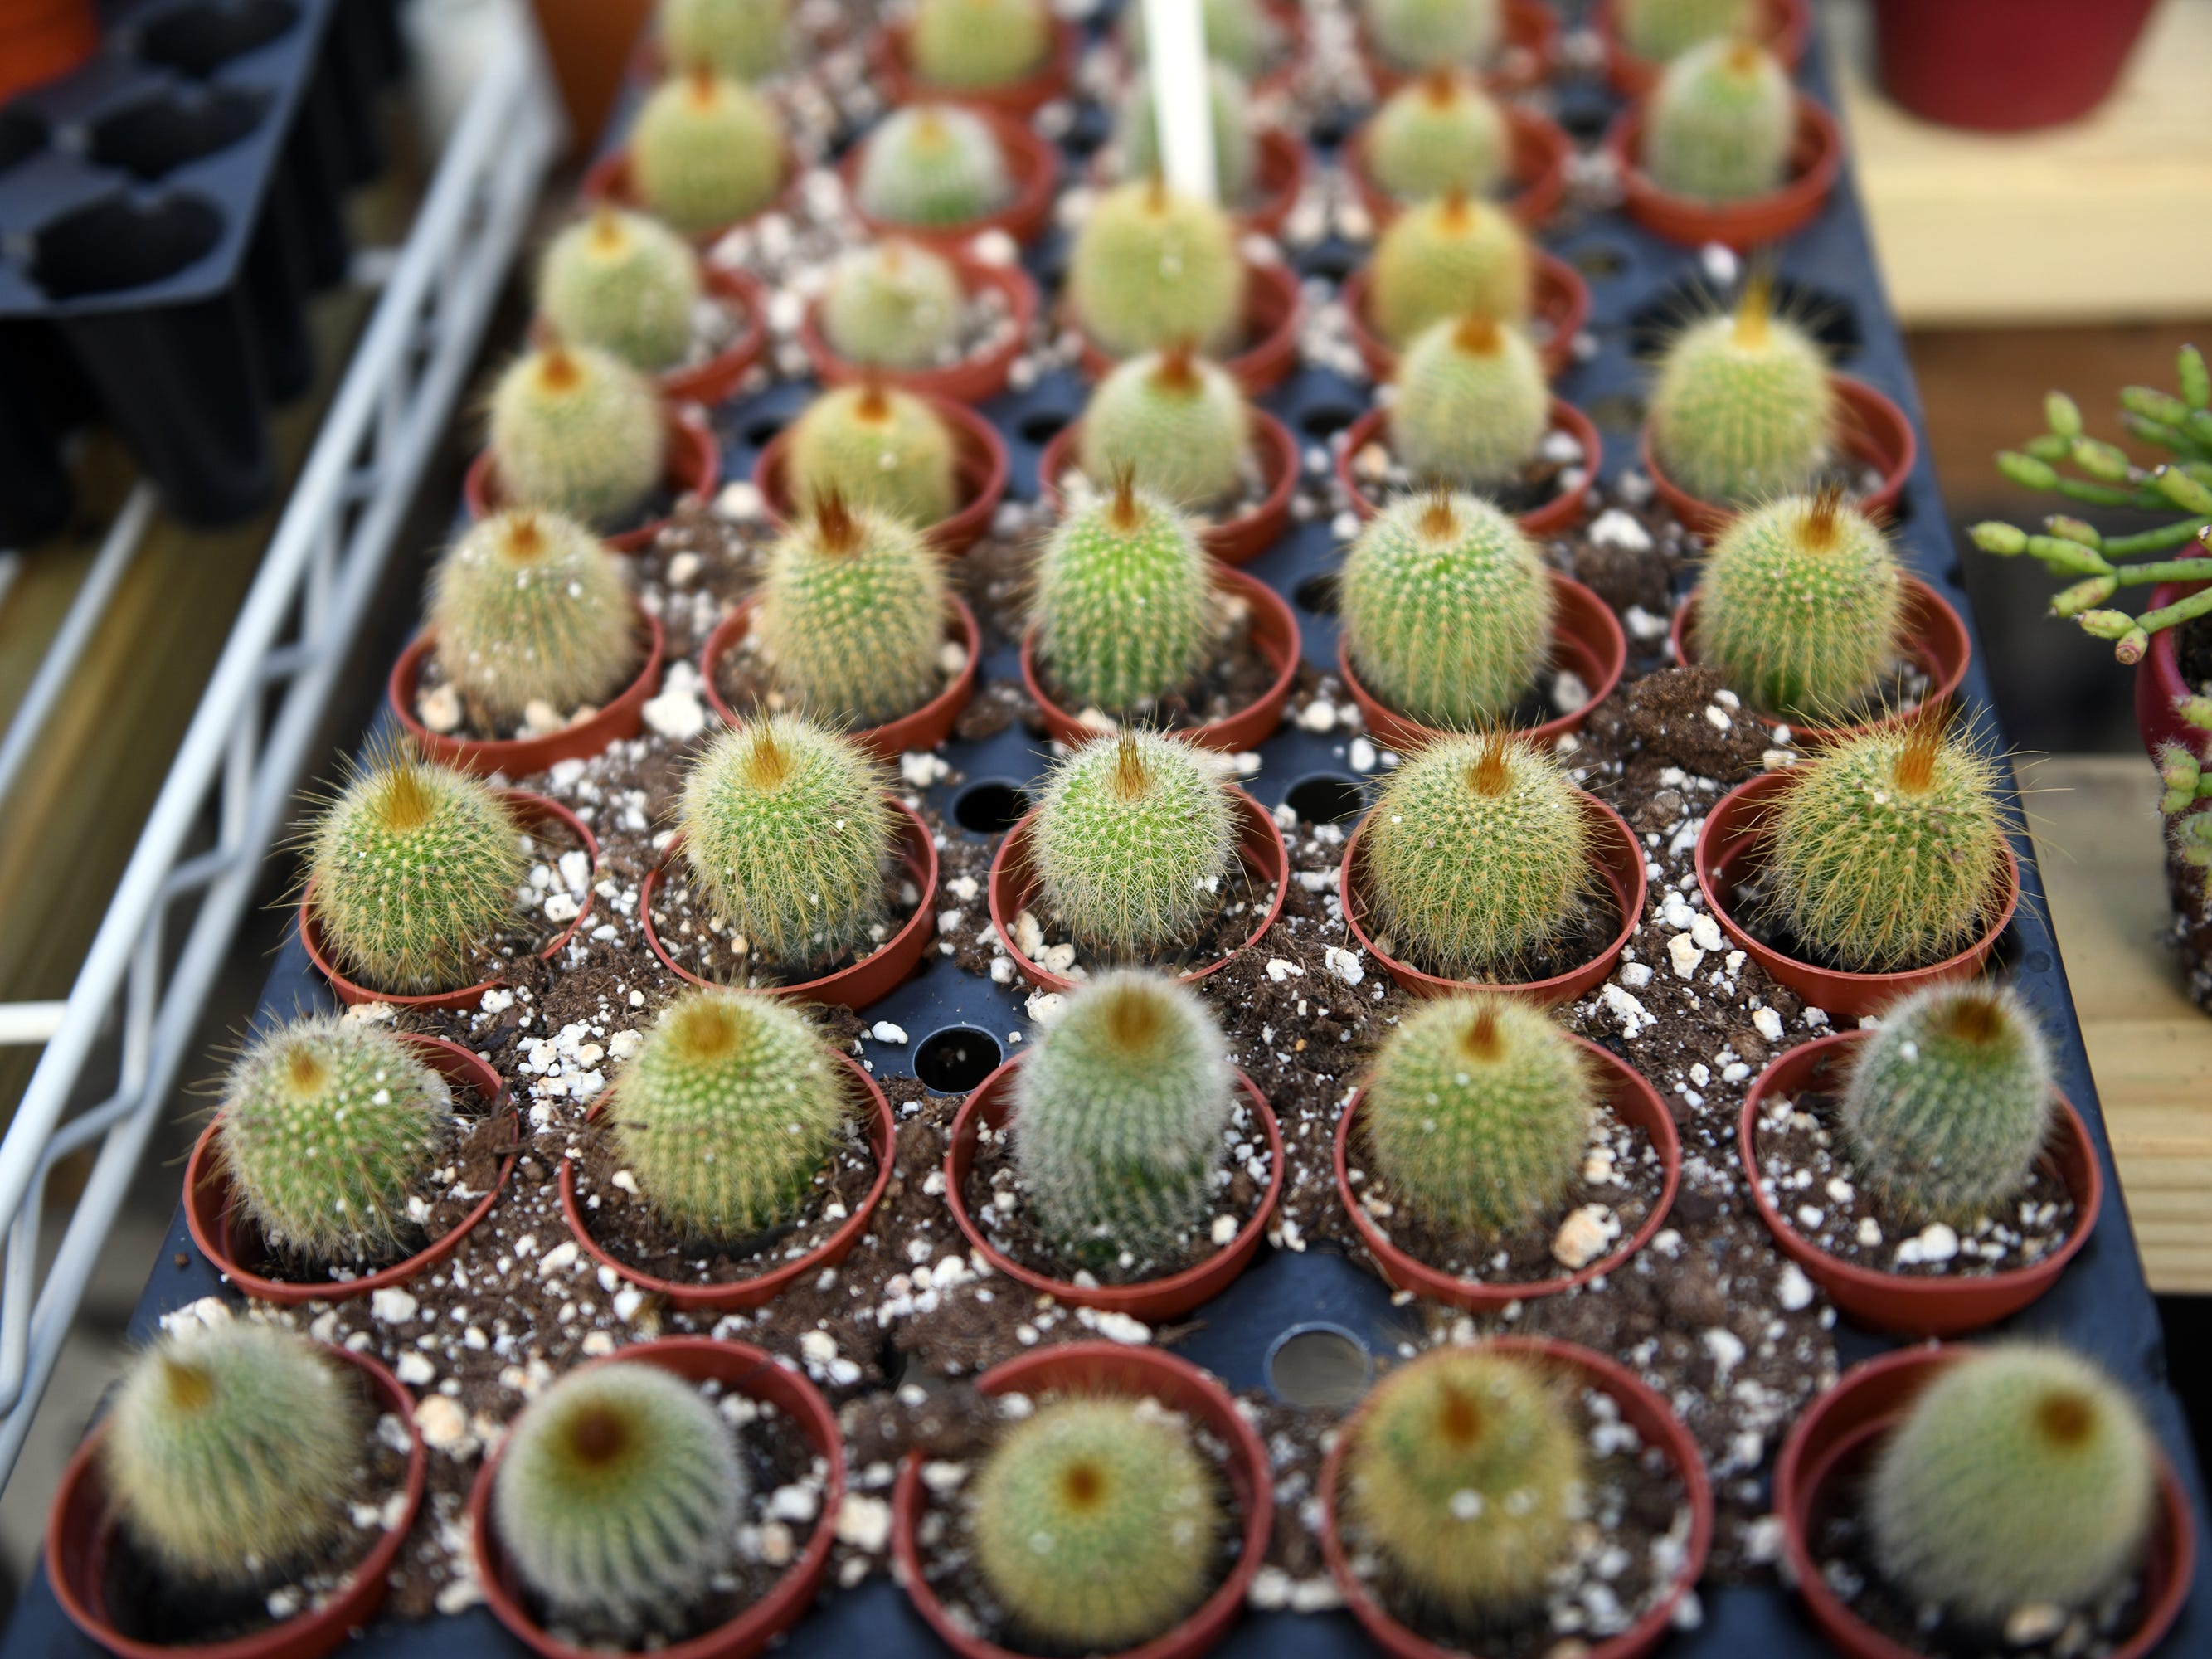 Huffman Farms also sells a variety of cactus plants.